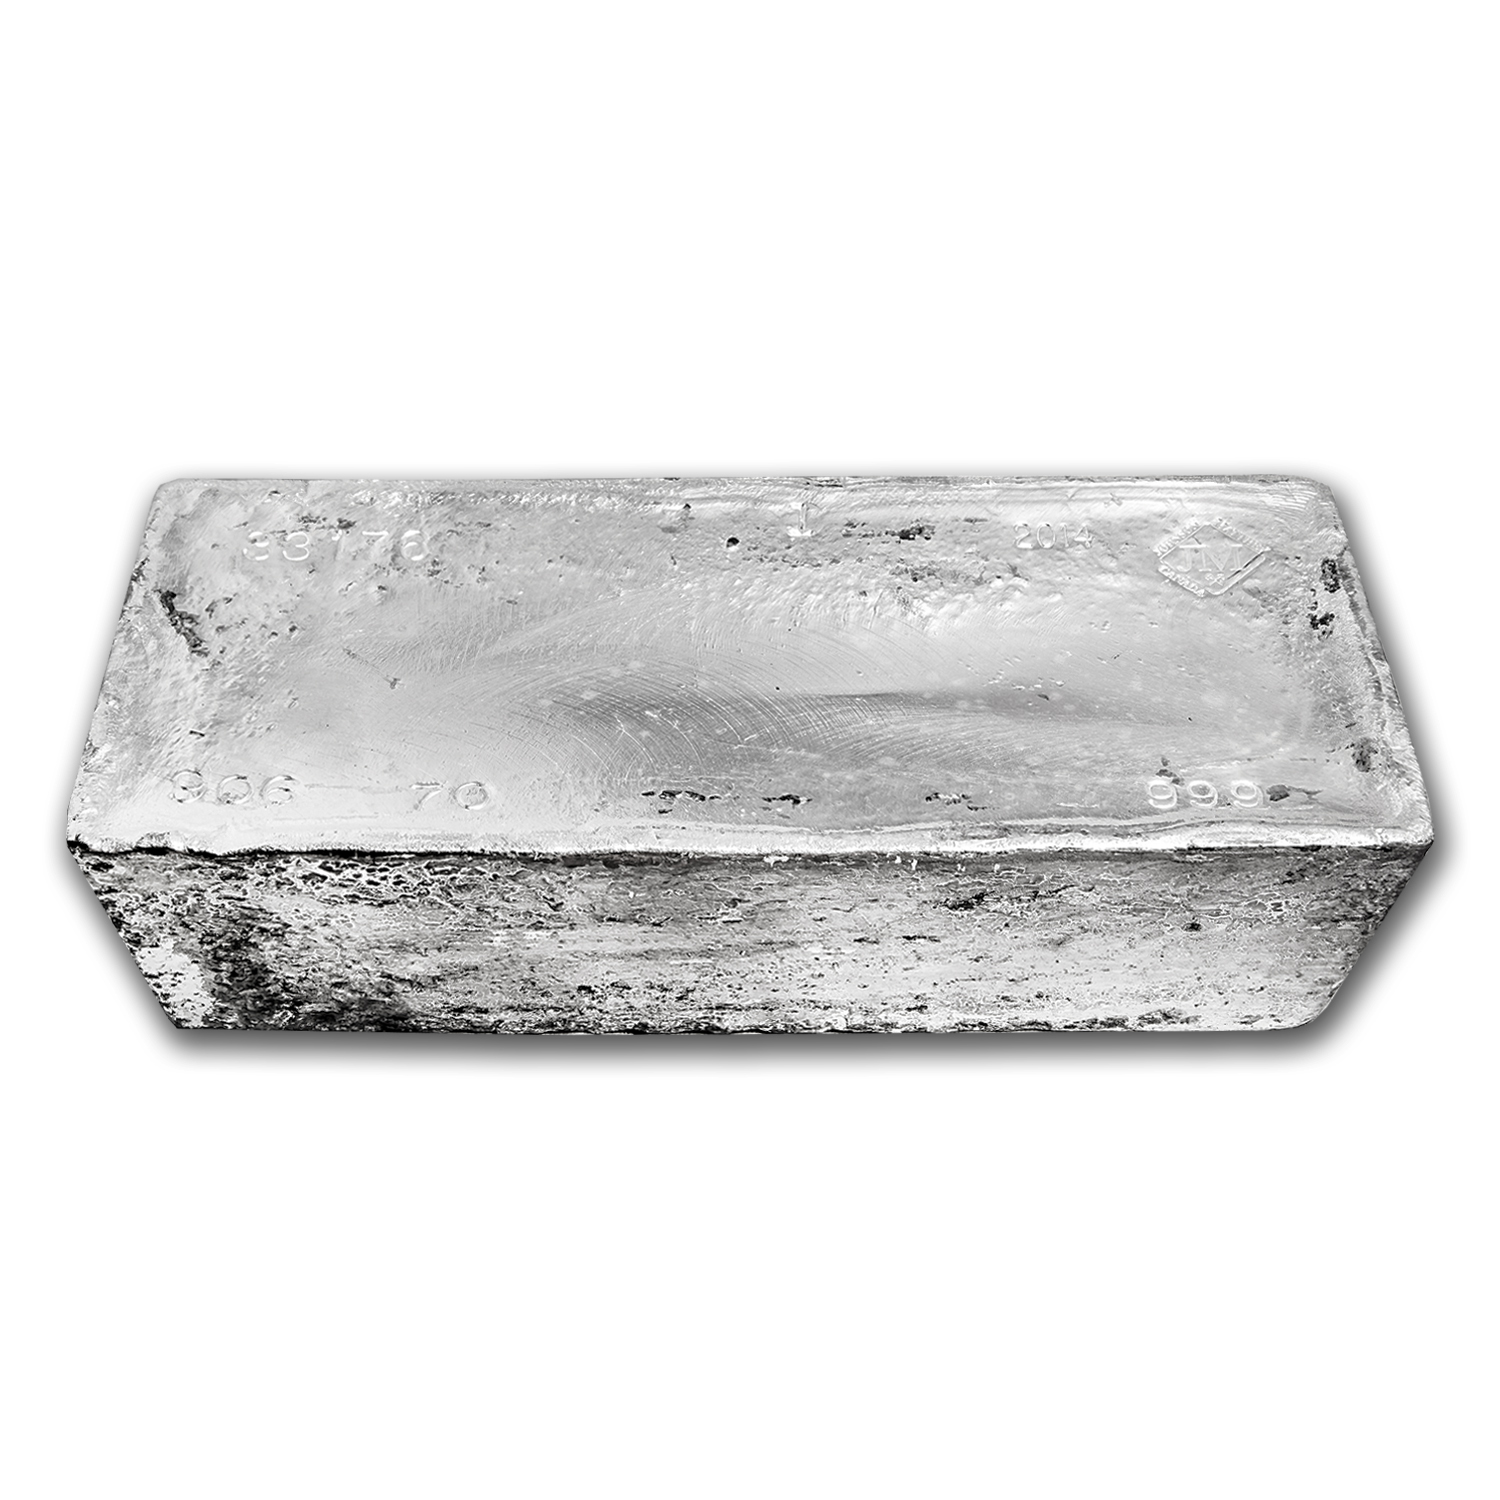 957.80 oz Silver Bars - Johnson Matthey